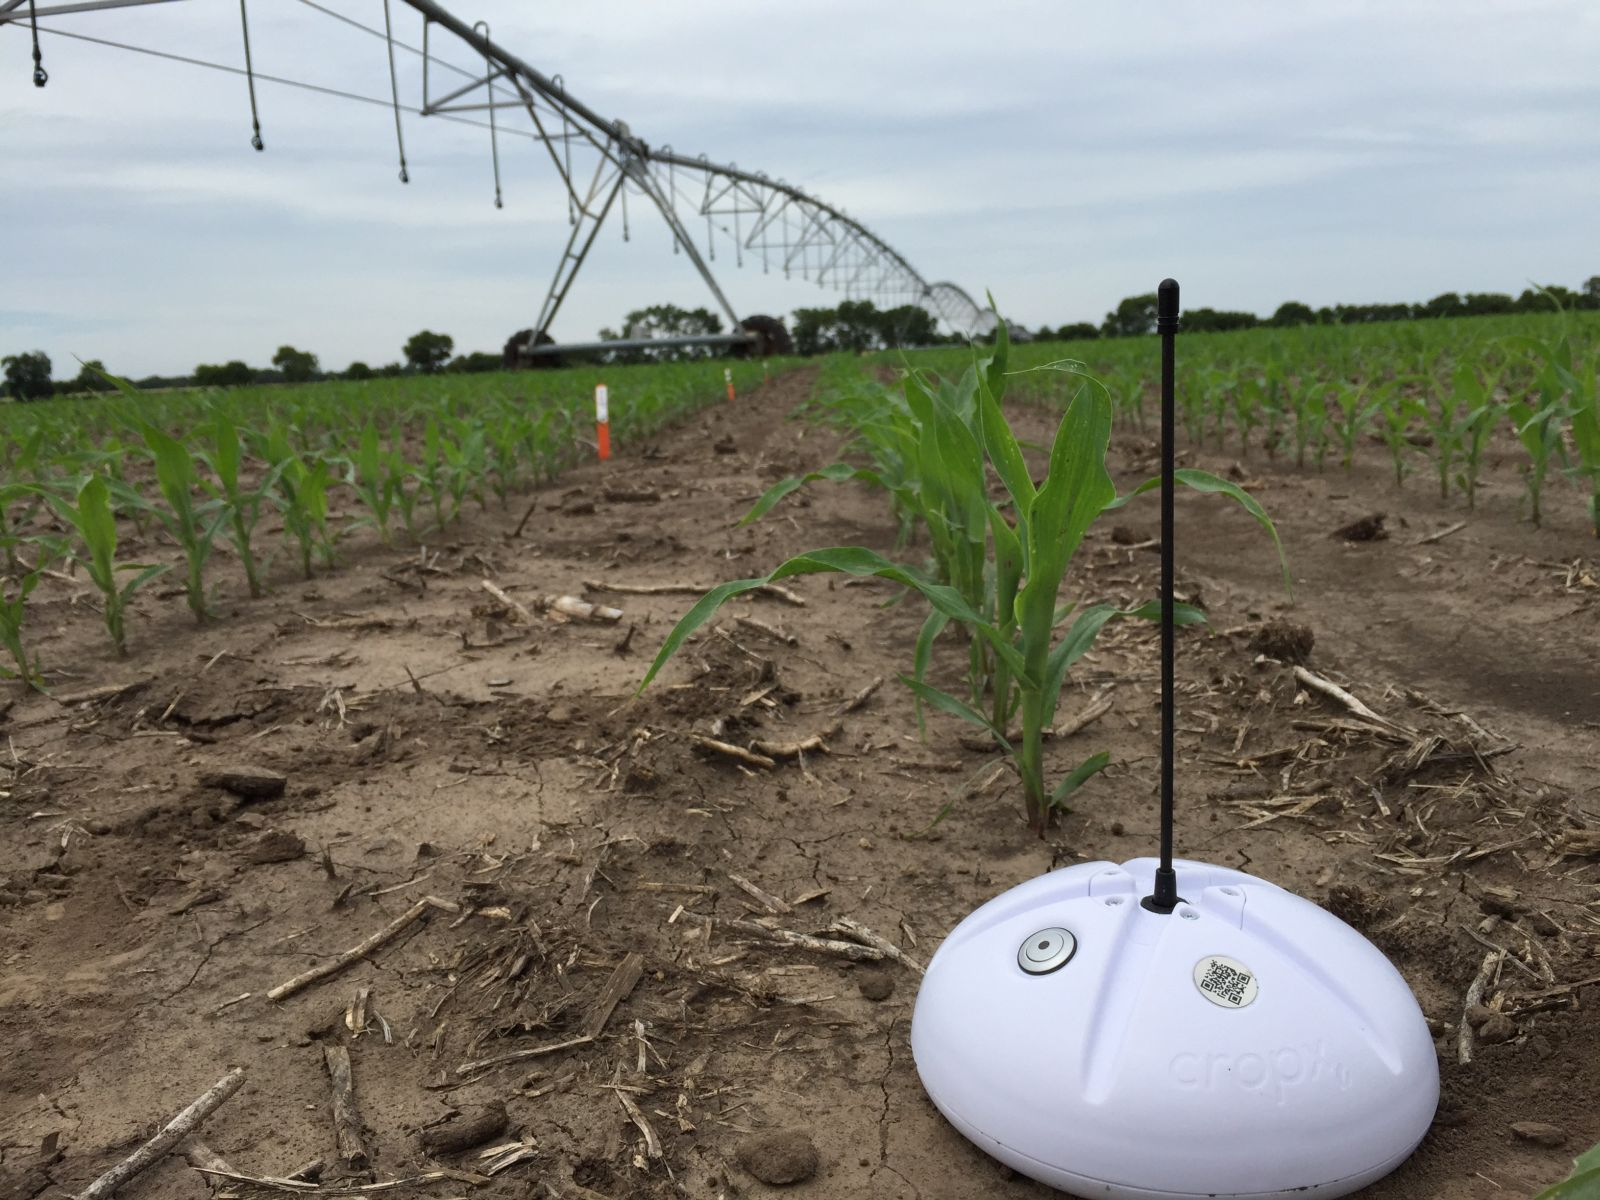 The CropX device at work in the fields. Photo courtesy of CropX